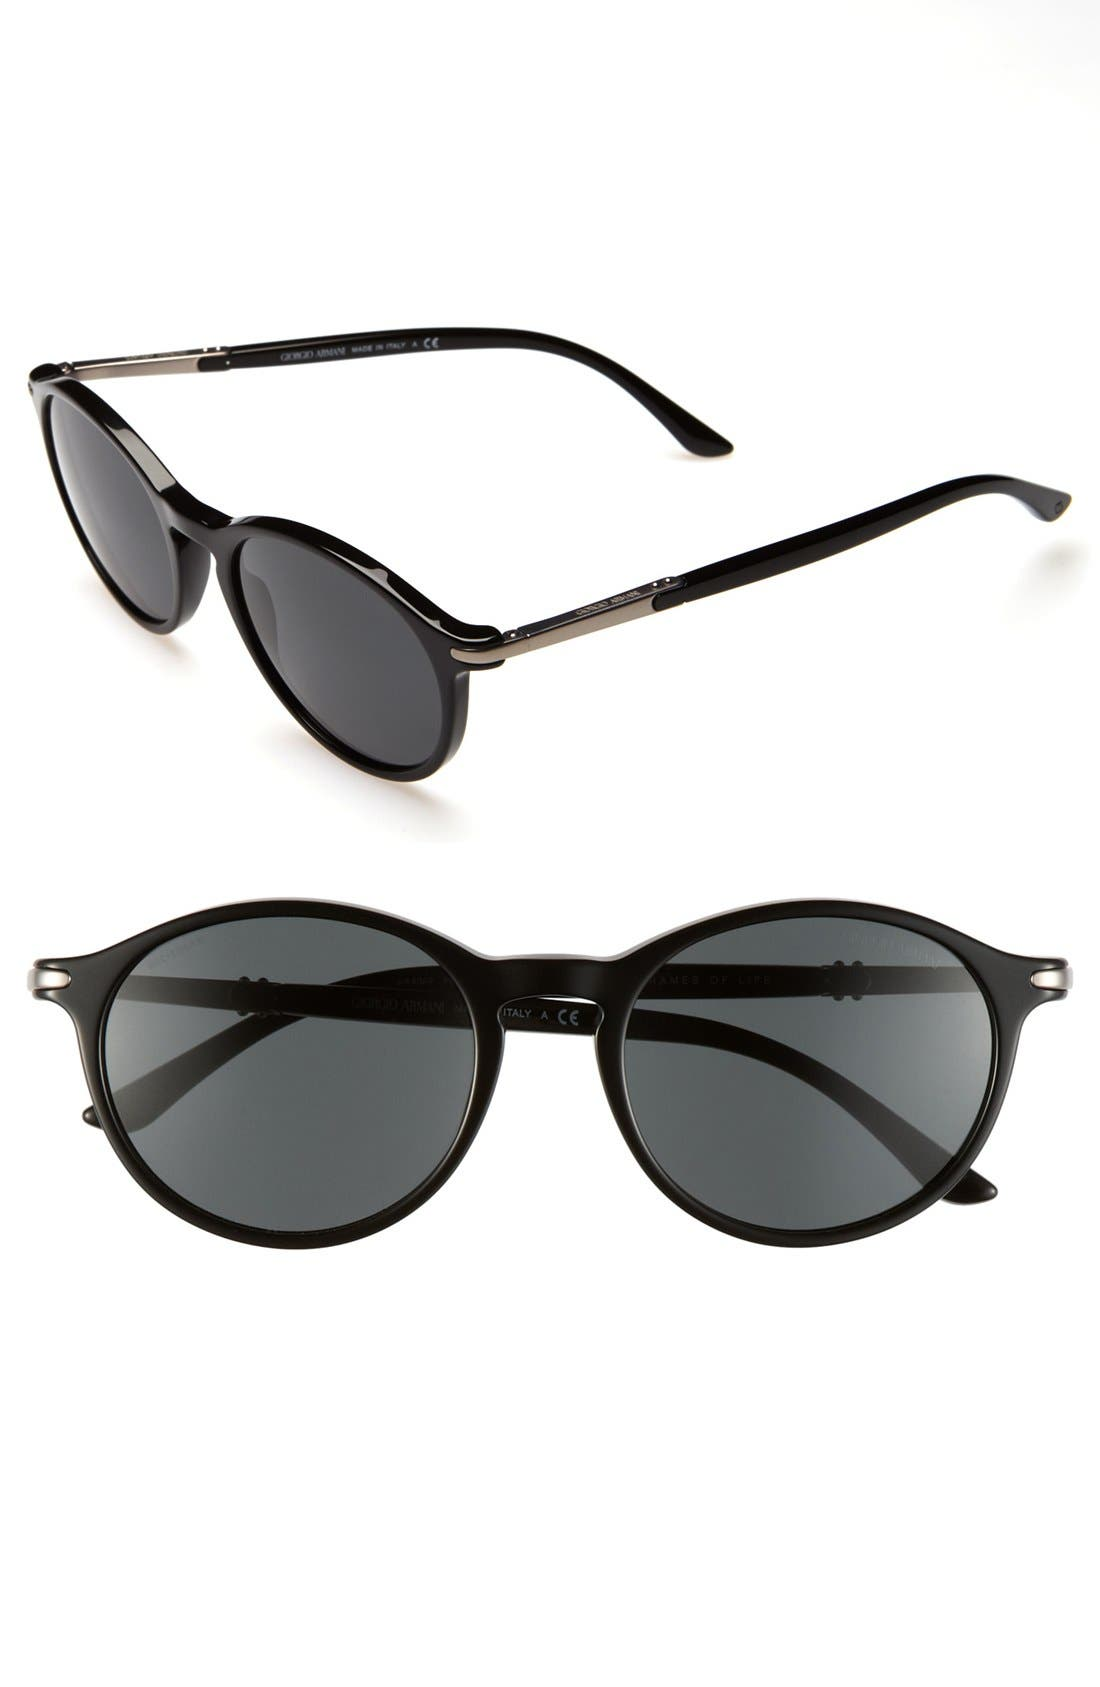 Main Image - Giorgio Armani 52mm Sunglasses